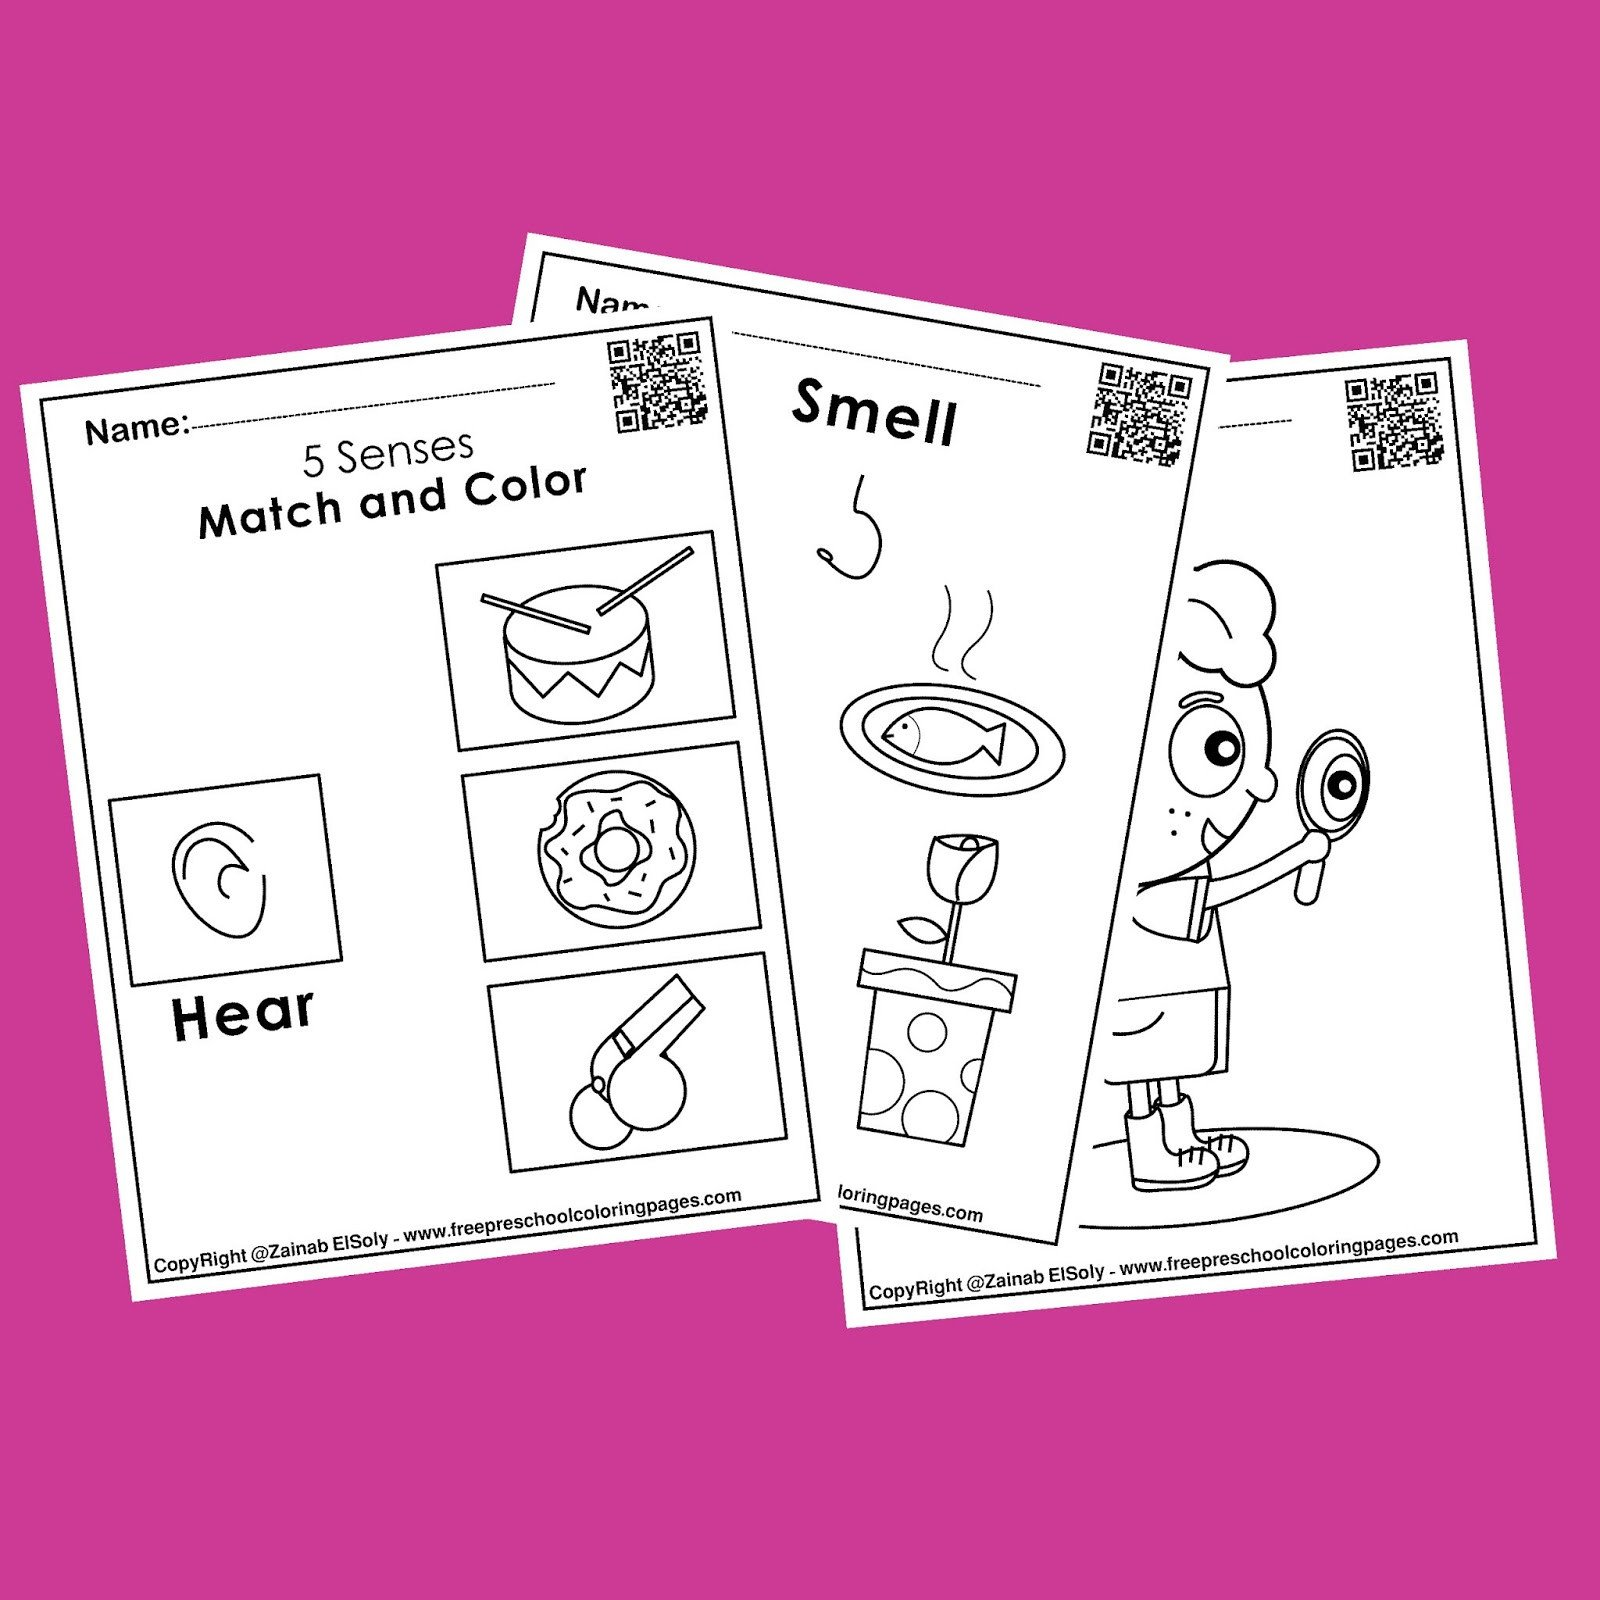 5 Senses Kindergarten Worksheets 5 Senses Free Worksheets Activities for Kids